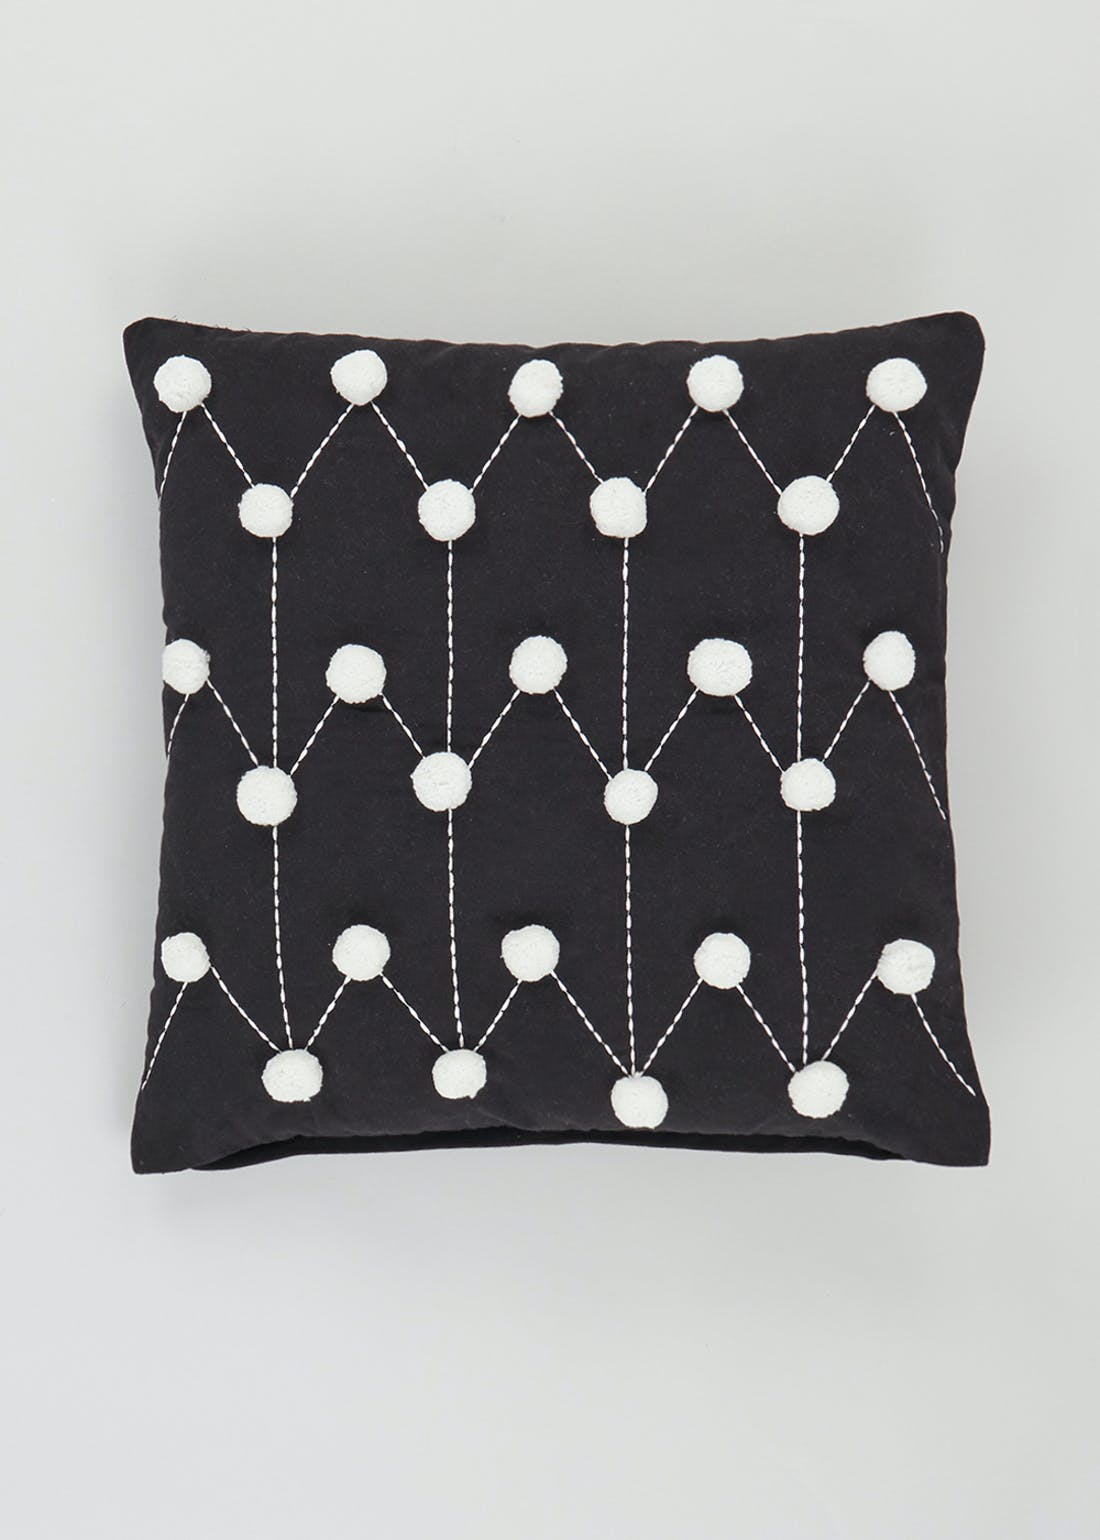 Embroidered Pom Pom Cushion (46cm x 46cm)